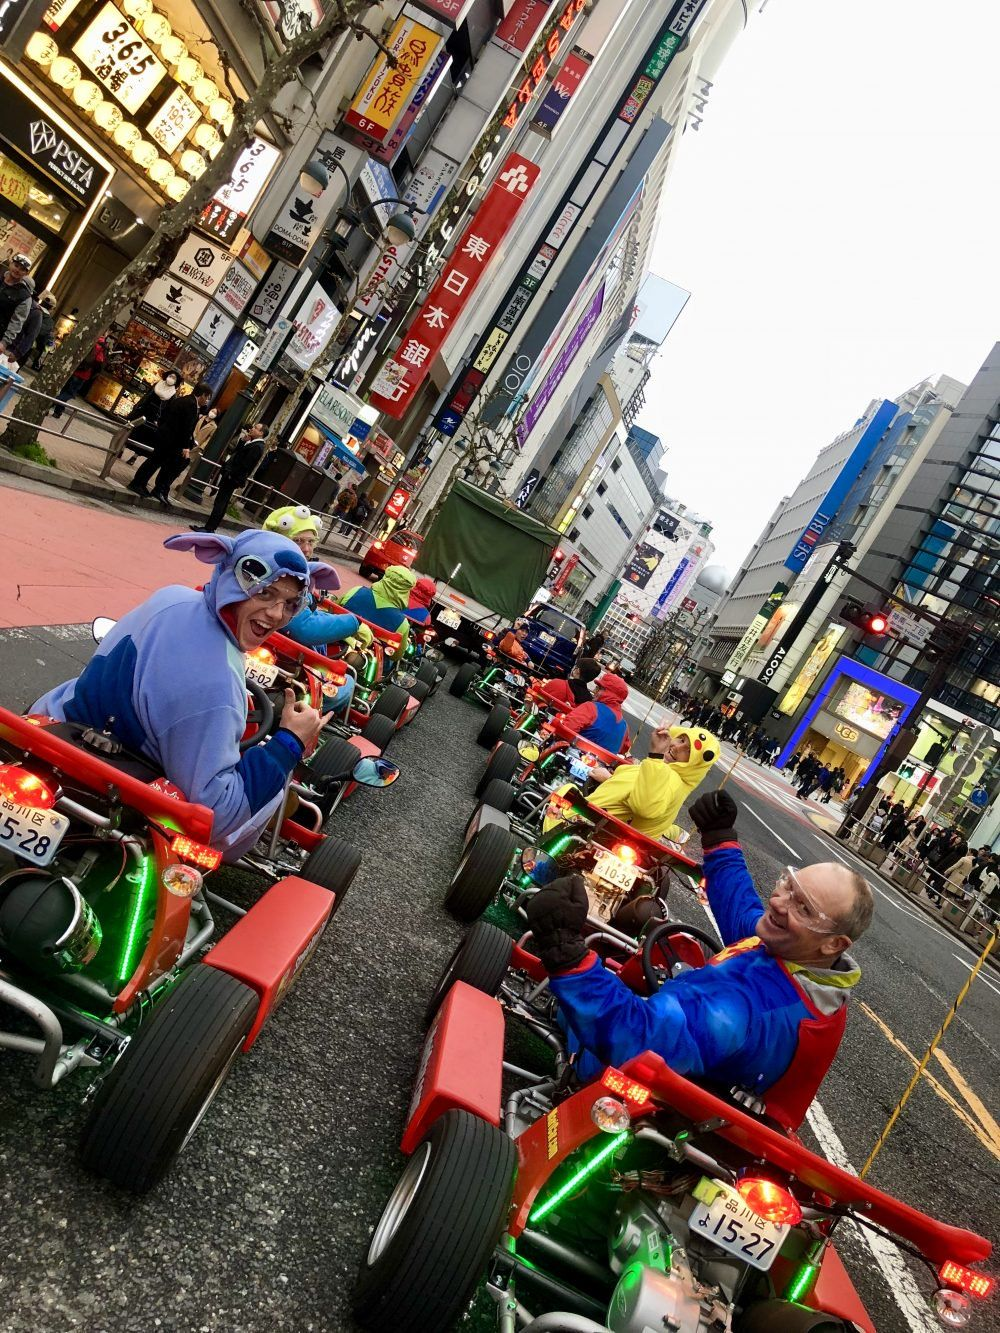 Experience Real Life Mario Kart Racing On The Streets Of